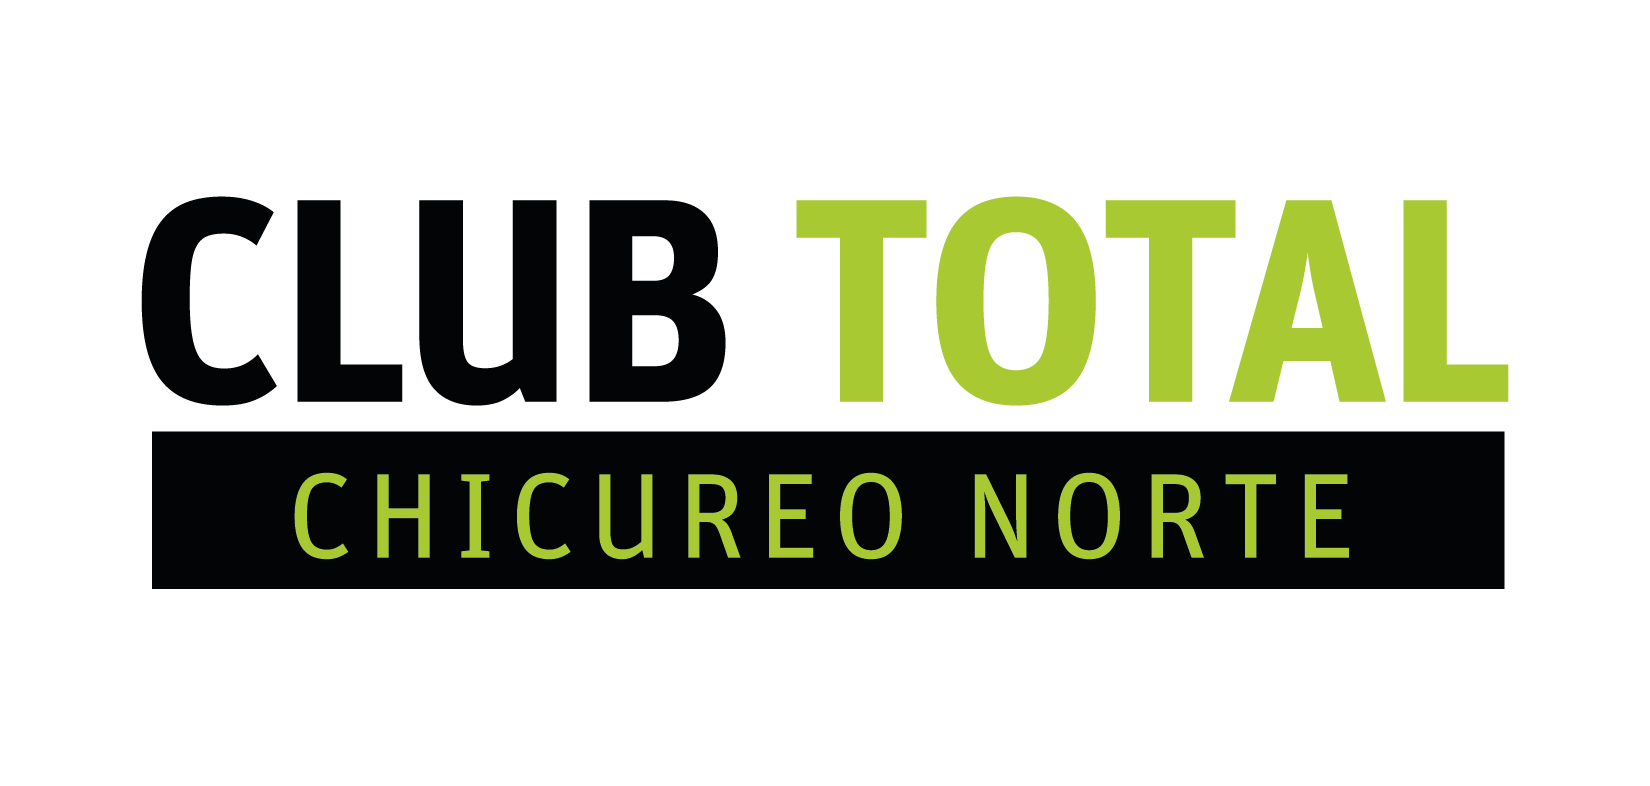 Copa Club Total Chicureo Norte F8